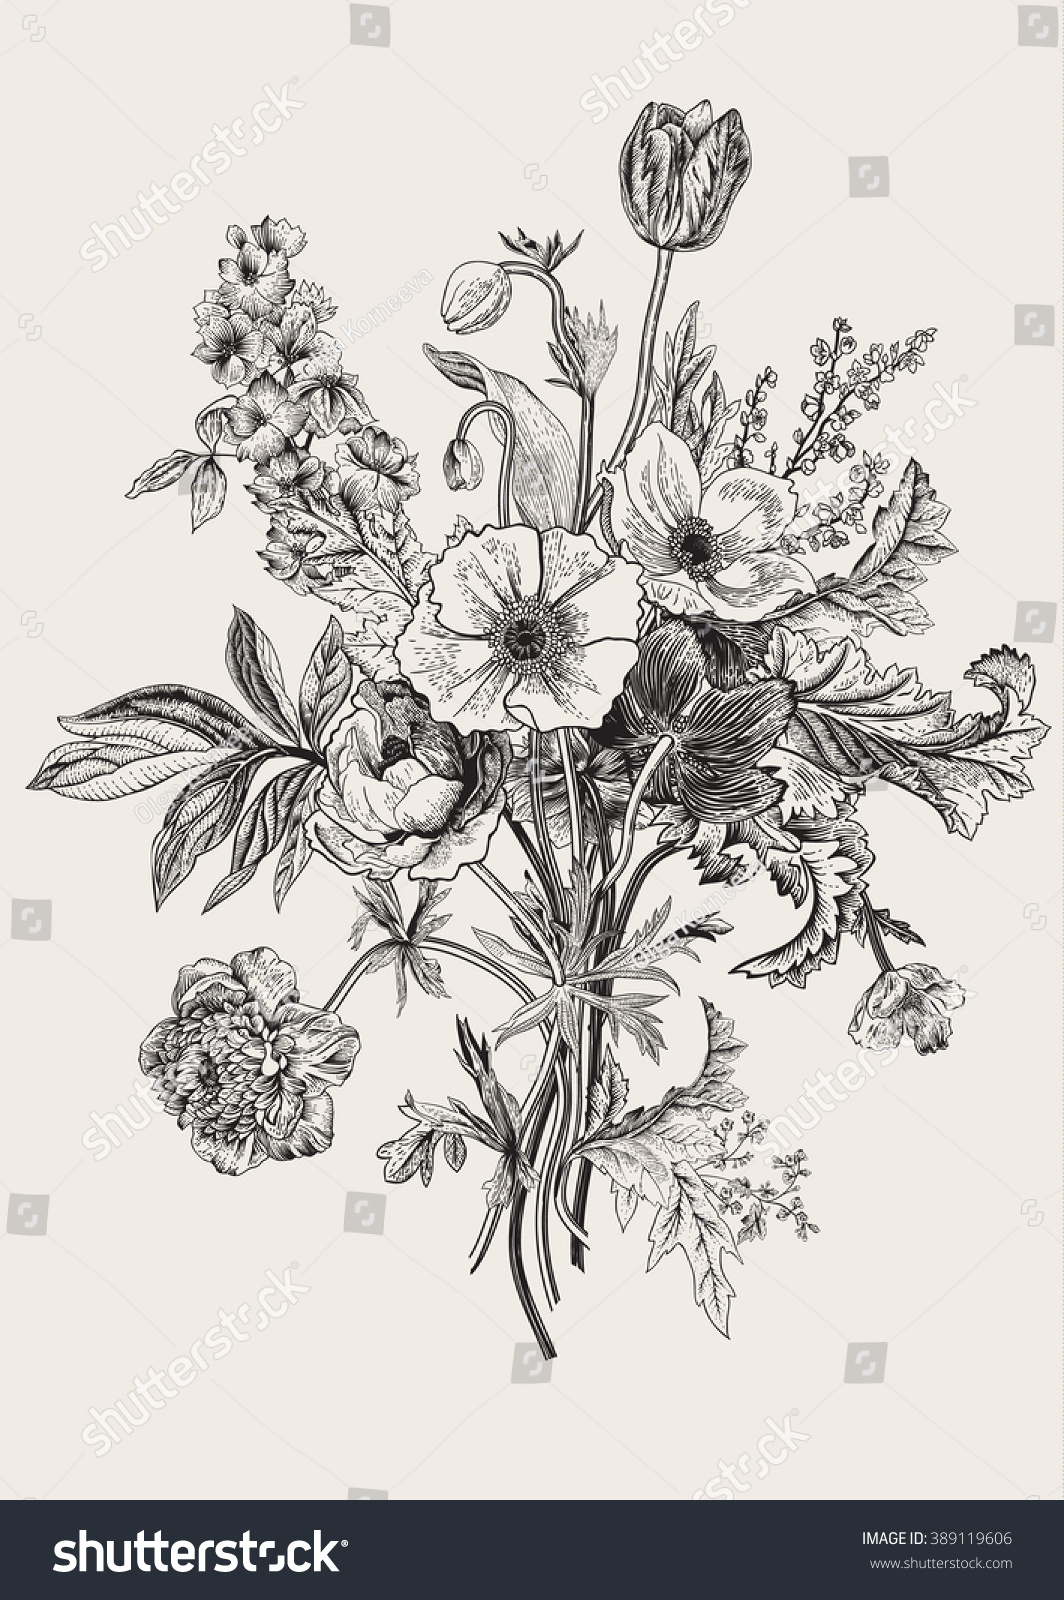 Botanical illustration black and white - photo#8